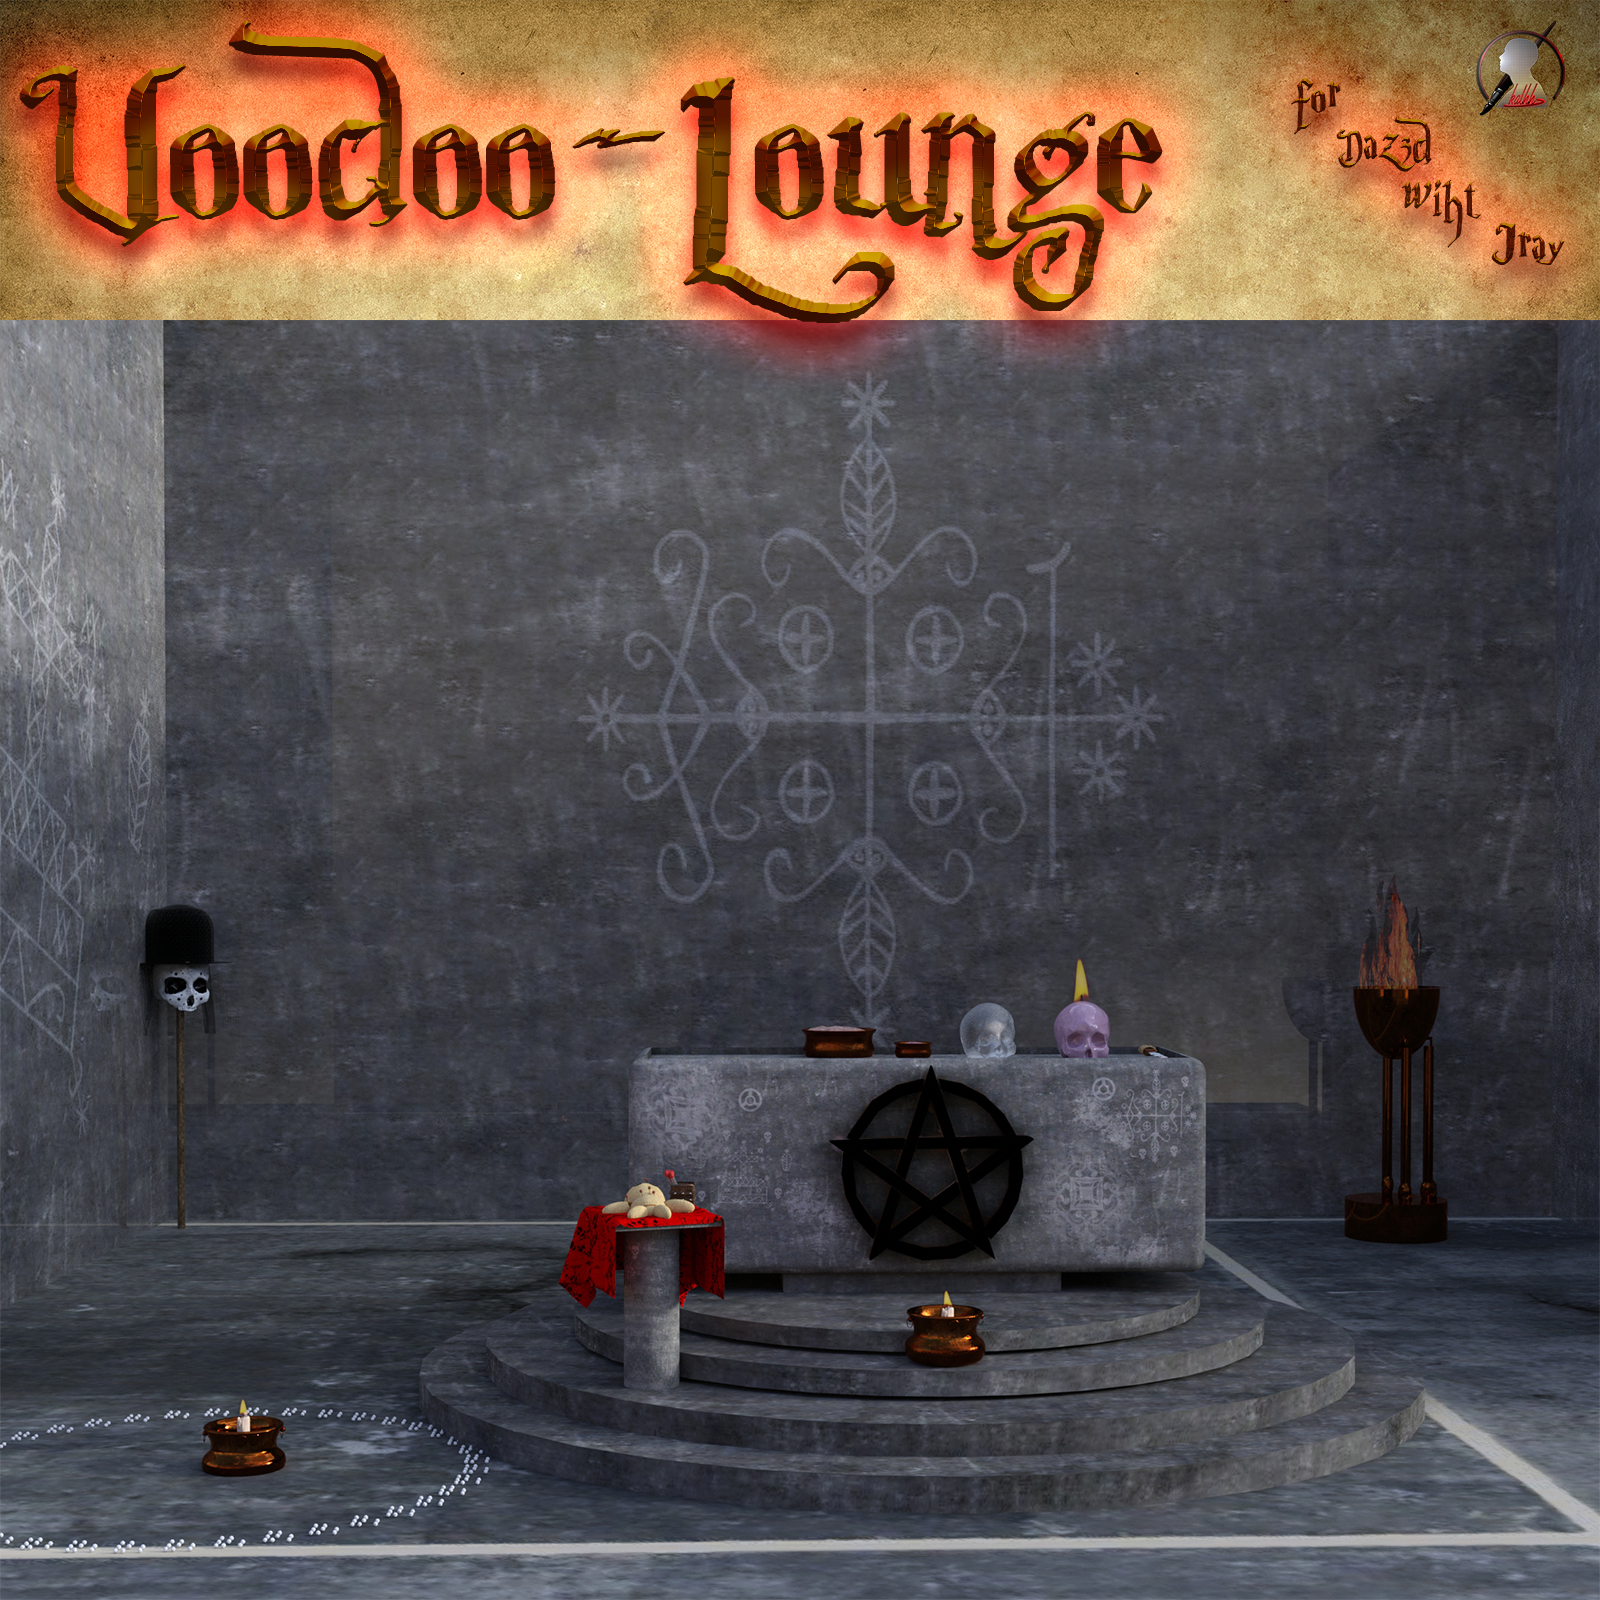 Voodoo Lounge scene for DAZ Studio Iray